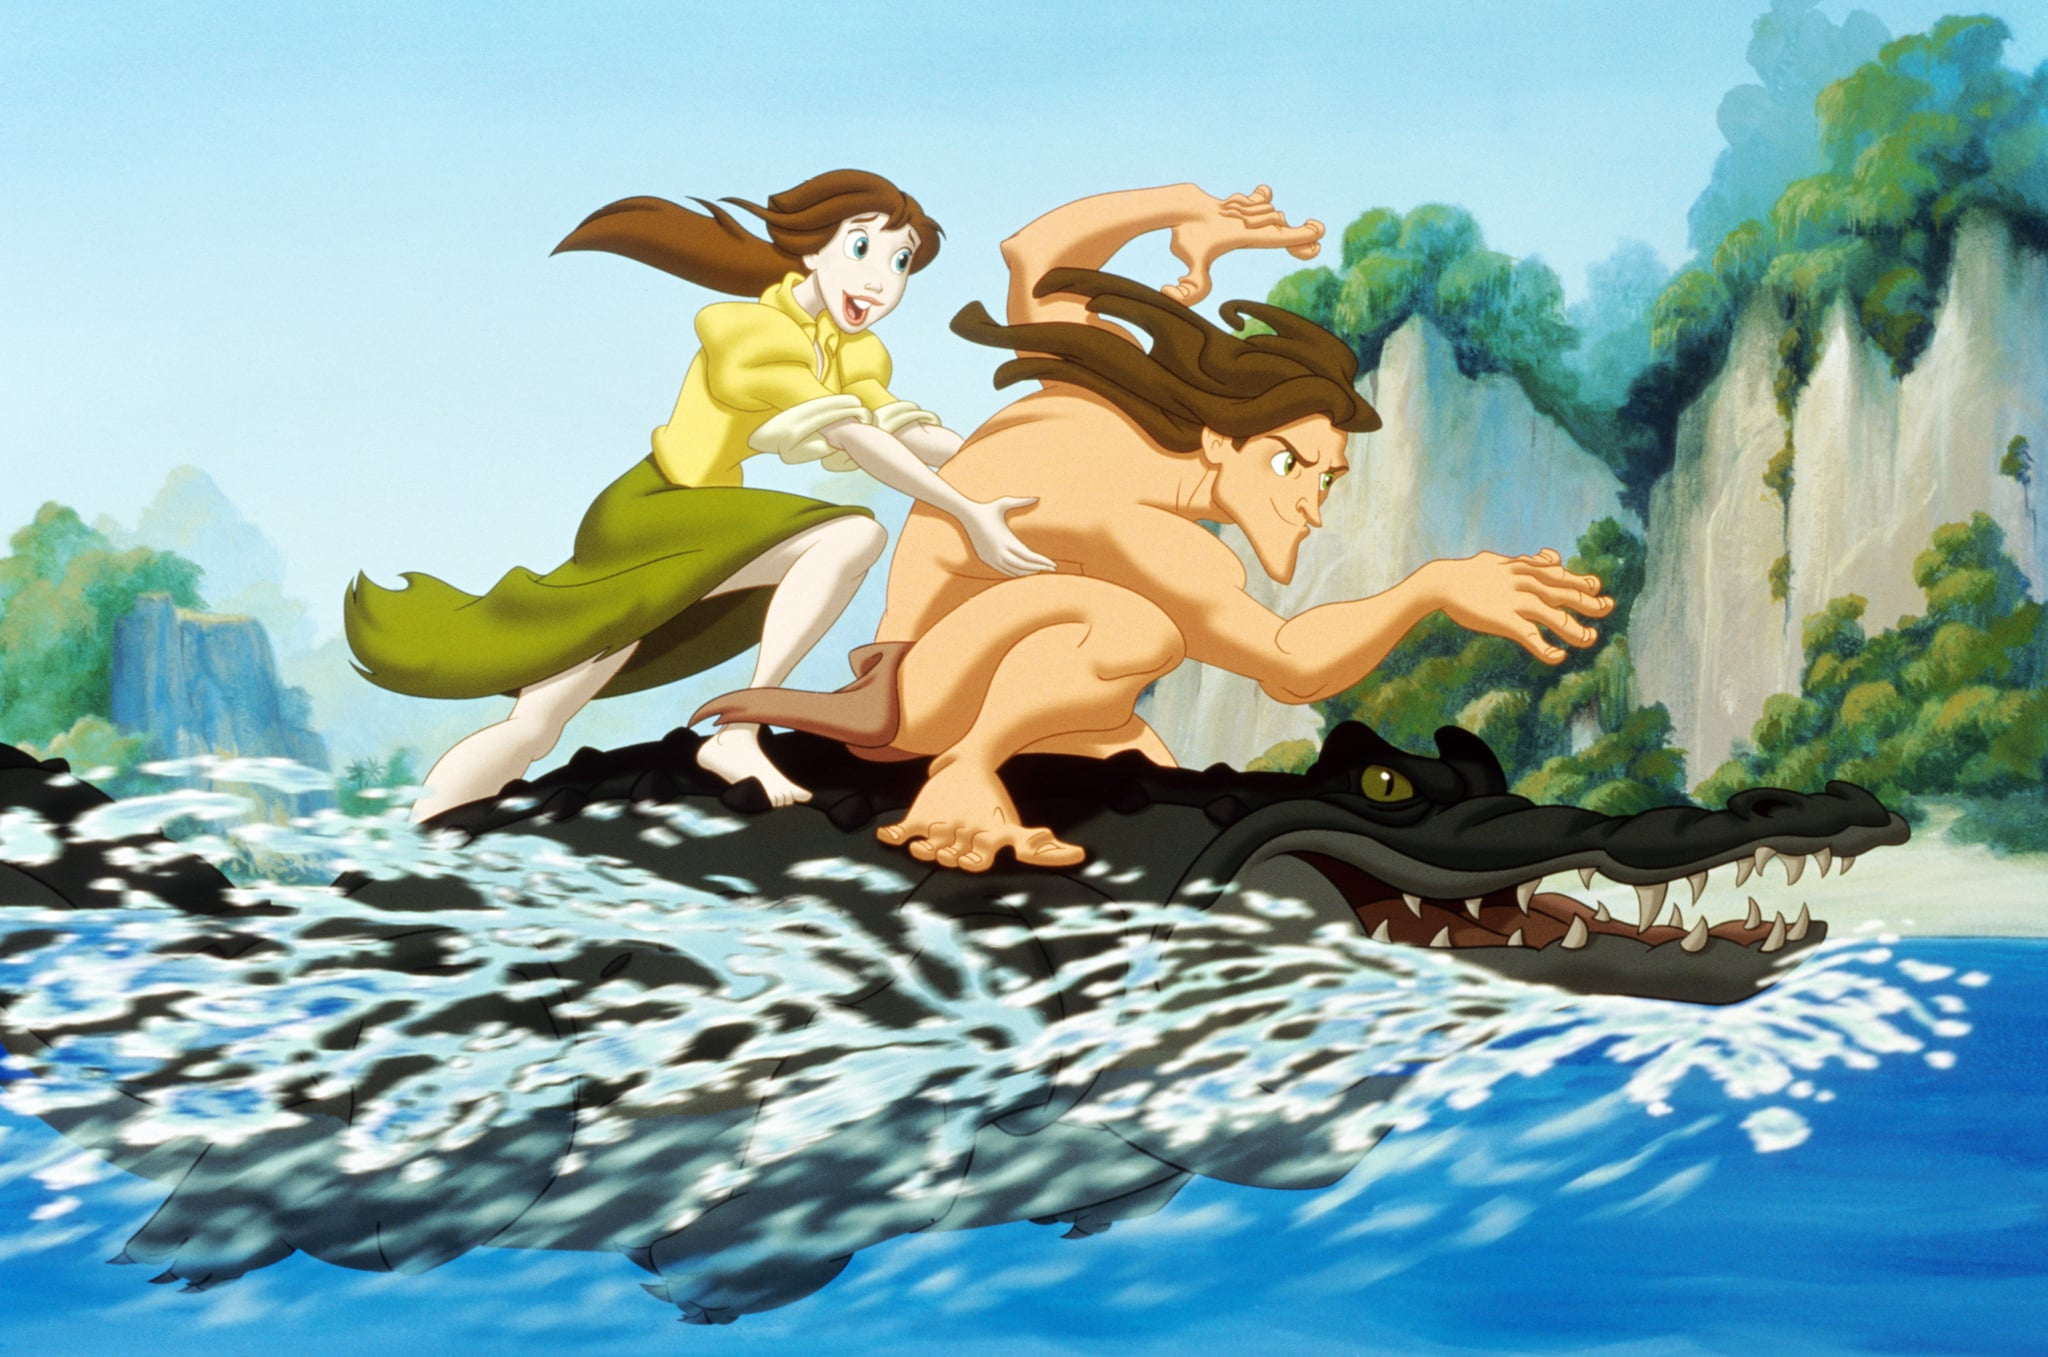 Tarzan 1999 The Ultimate List Of Animated Disney Movies You Need To Watch With Your Kids Popsugar Family Photo 31